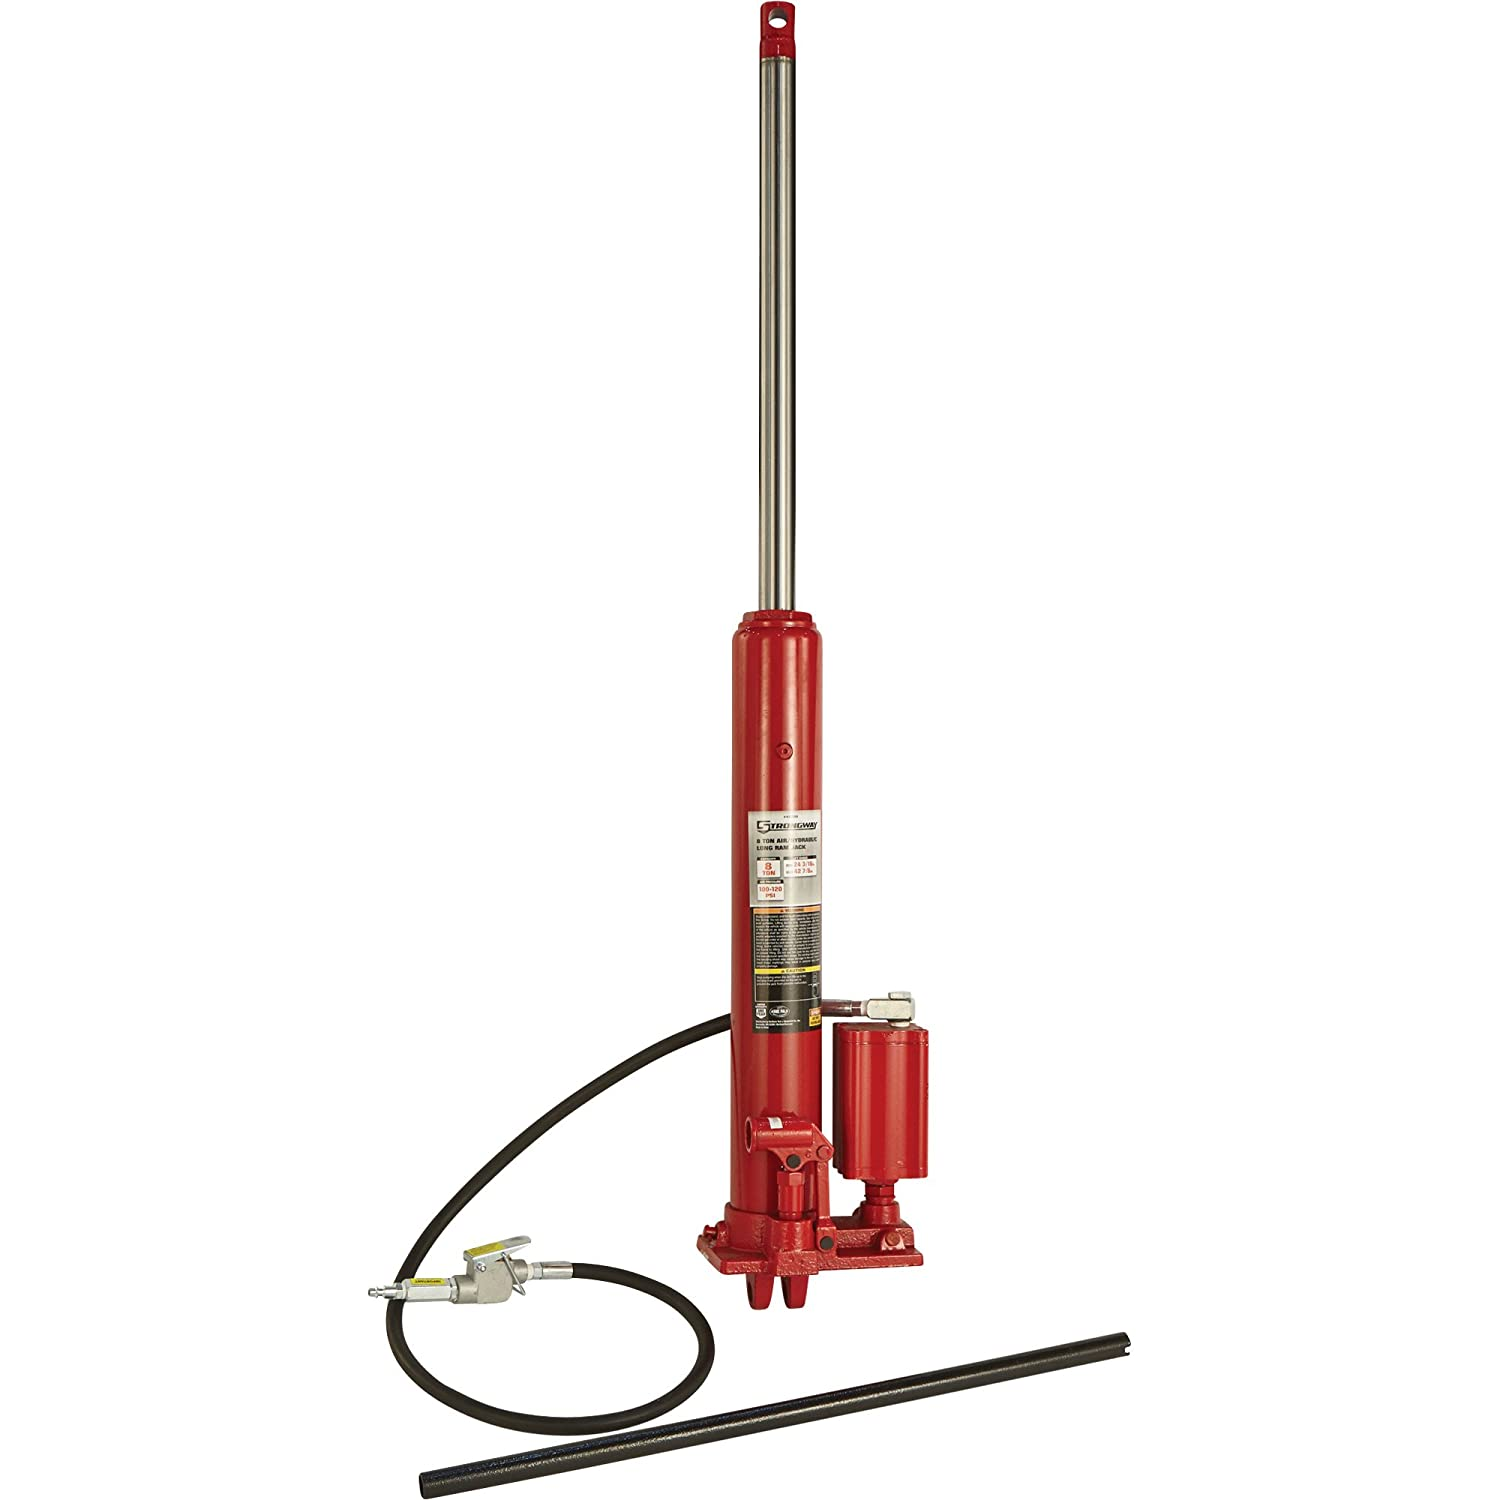 Strongway Air/Hydraulic Long Ram Jack - 8-Ton Capacity, 24 3/16in